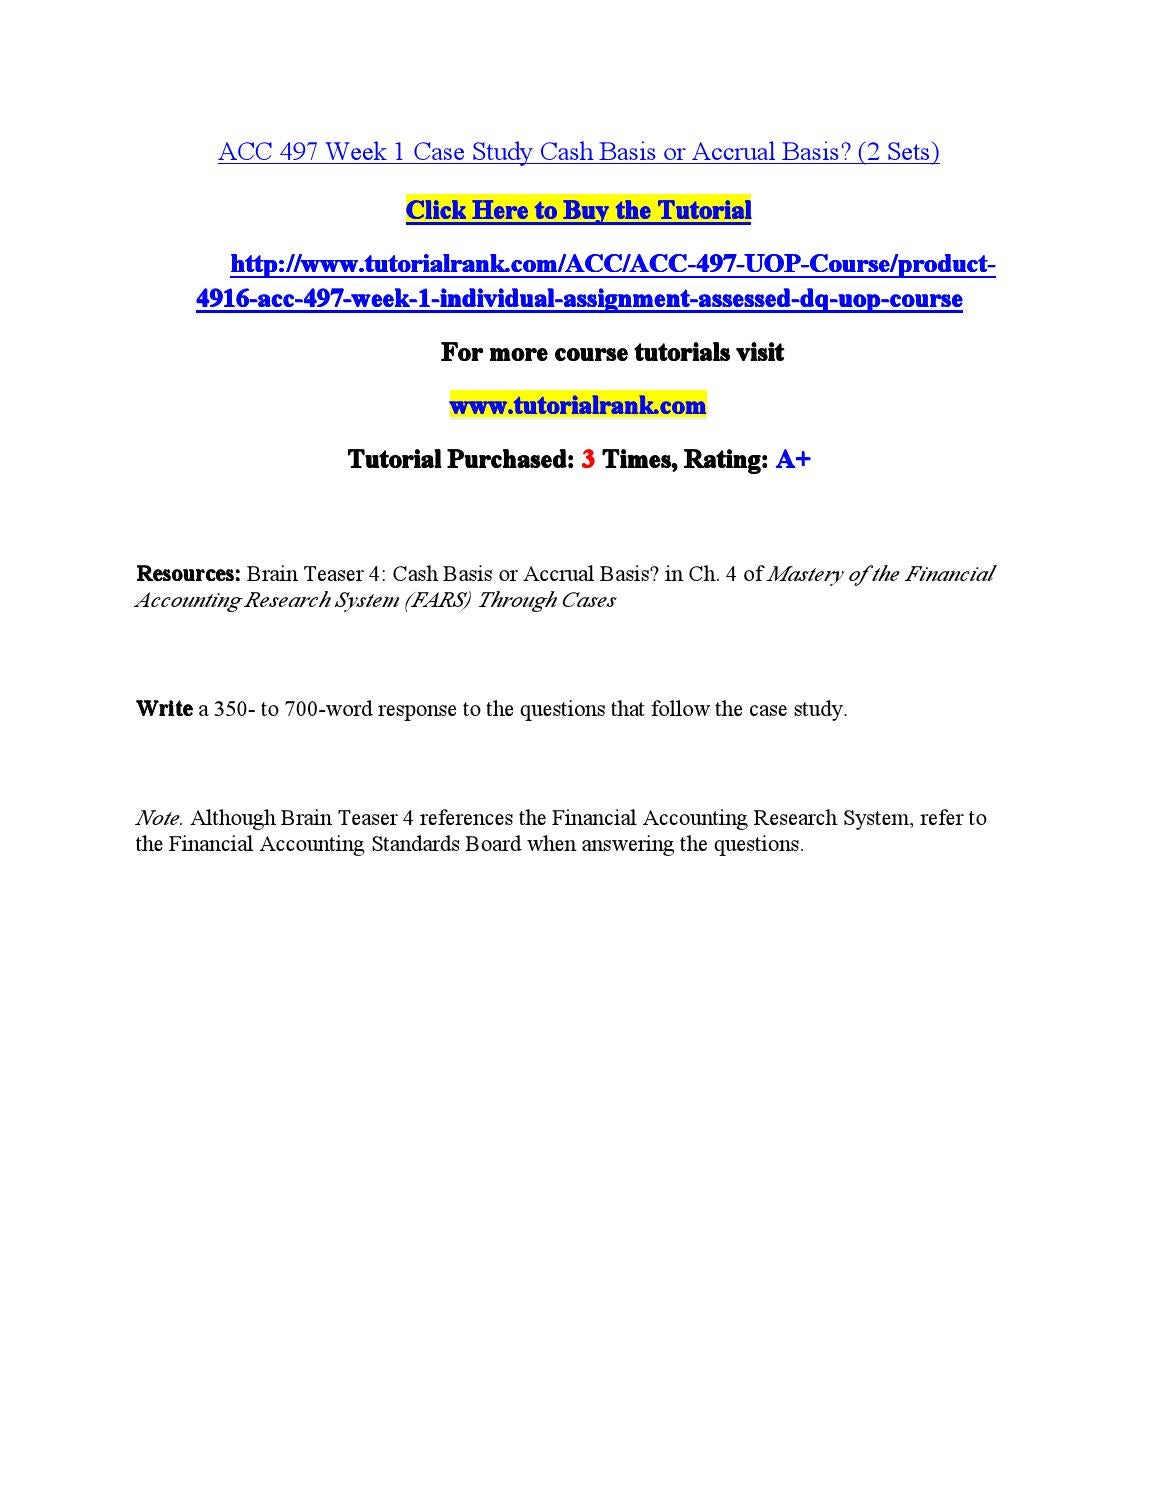 bs6100 individual assignment 2014 15 1 Hcs 320 entire class week 1-5 hcs 320 healthcare communication strategies week 1 individual assignment: matter using 10-15.